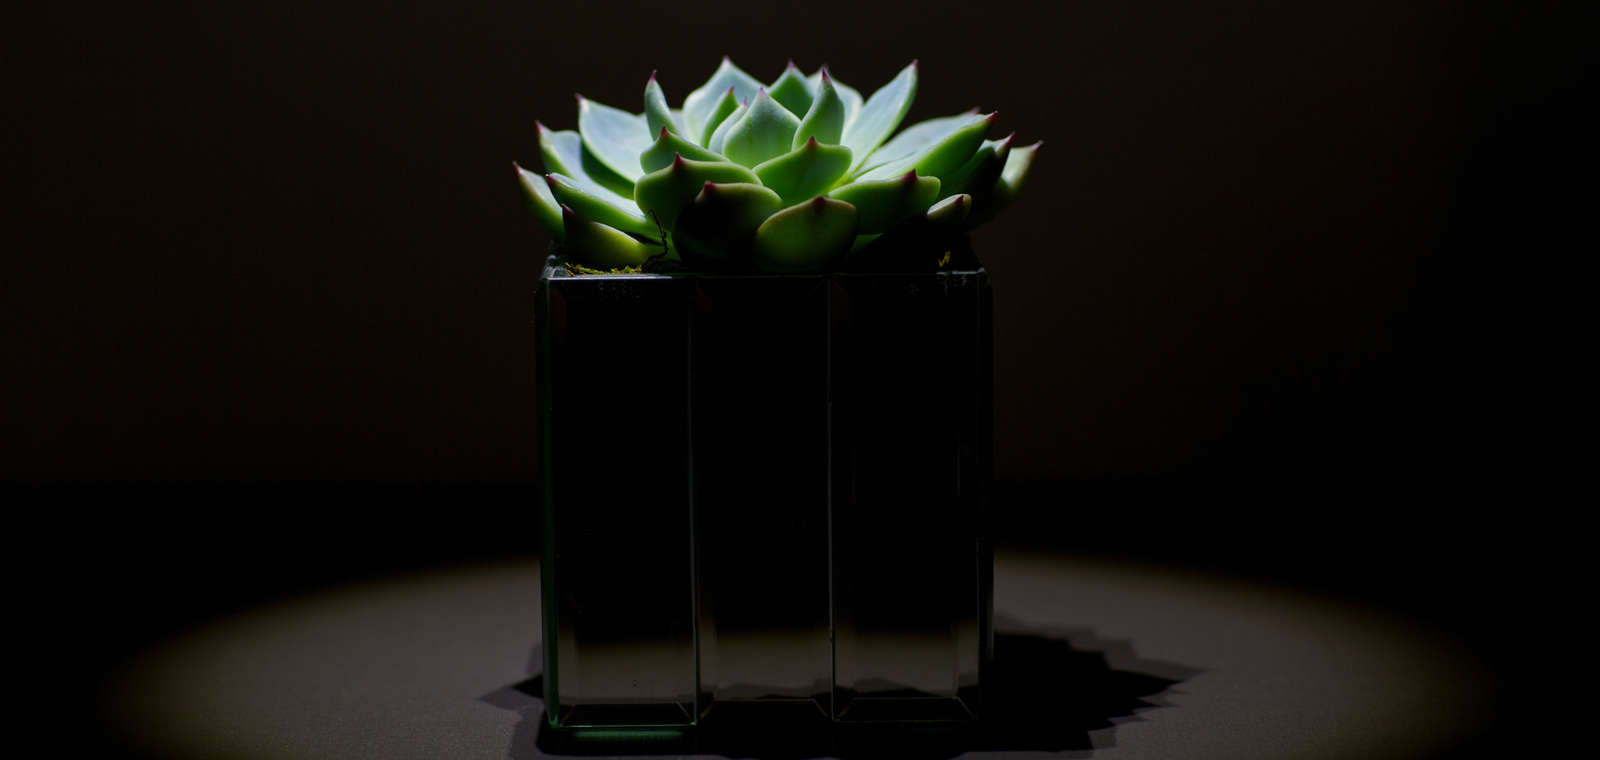 Succulent Plant In Low Light